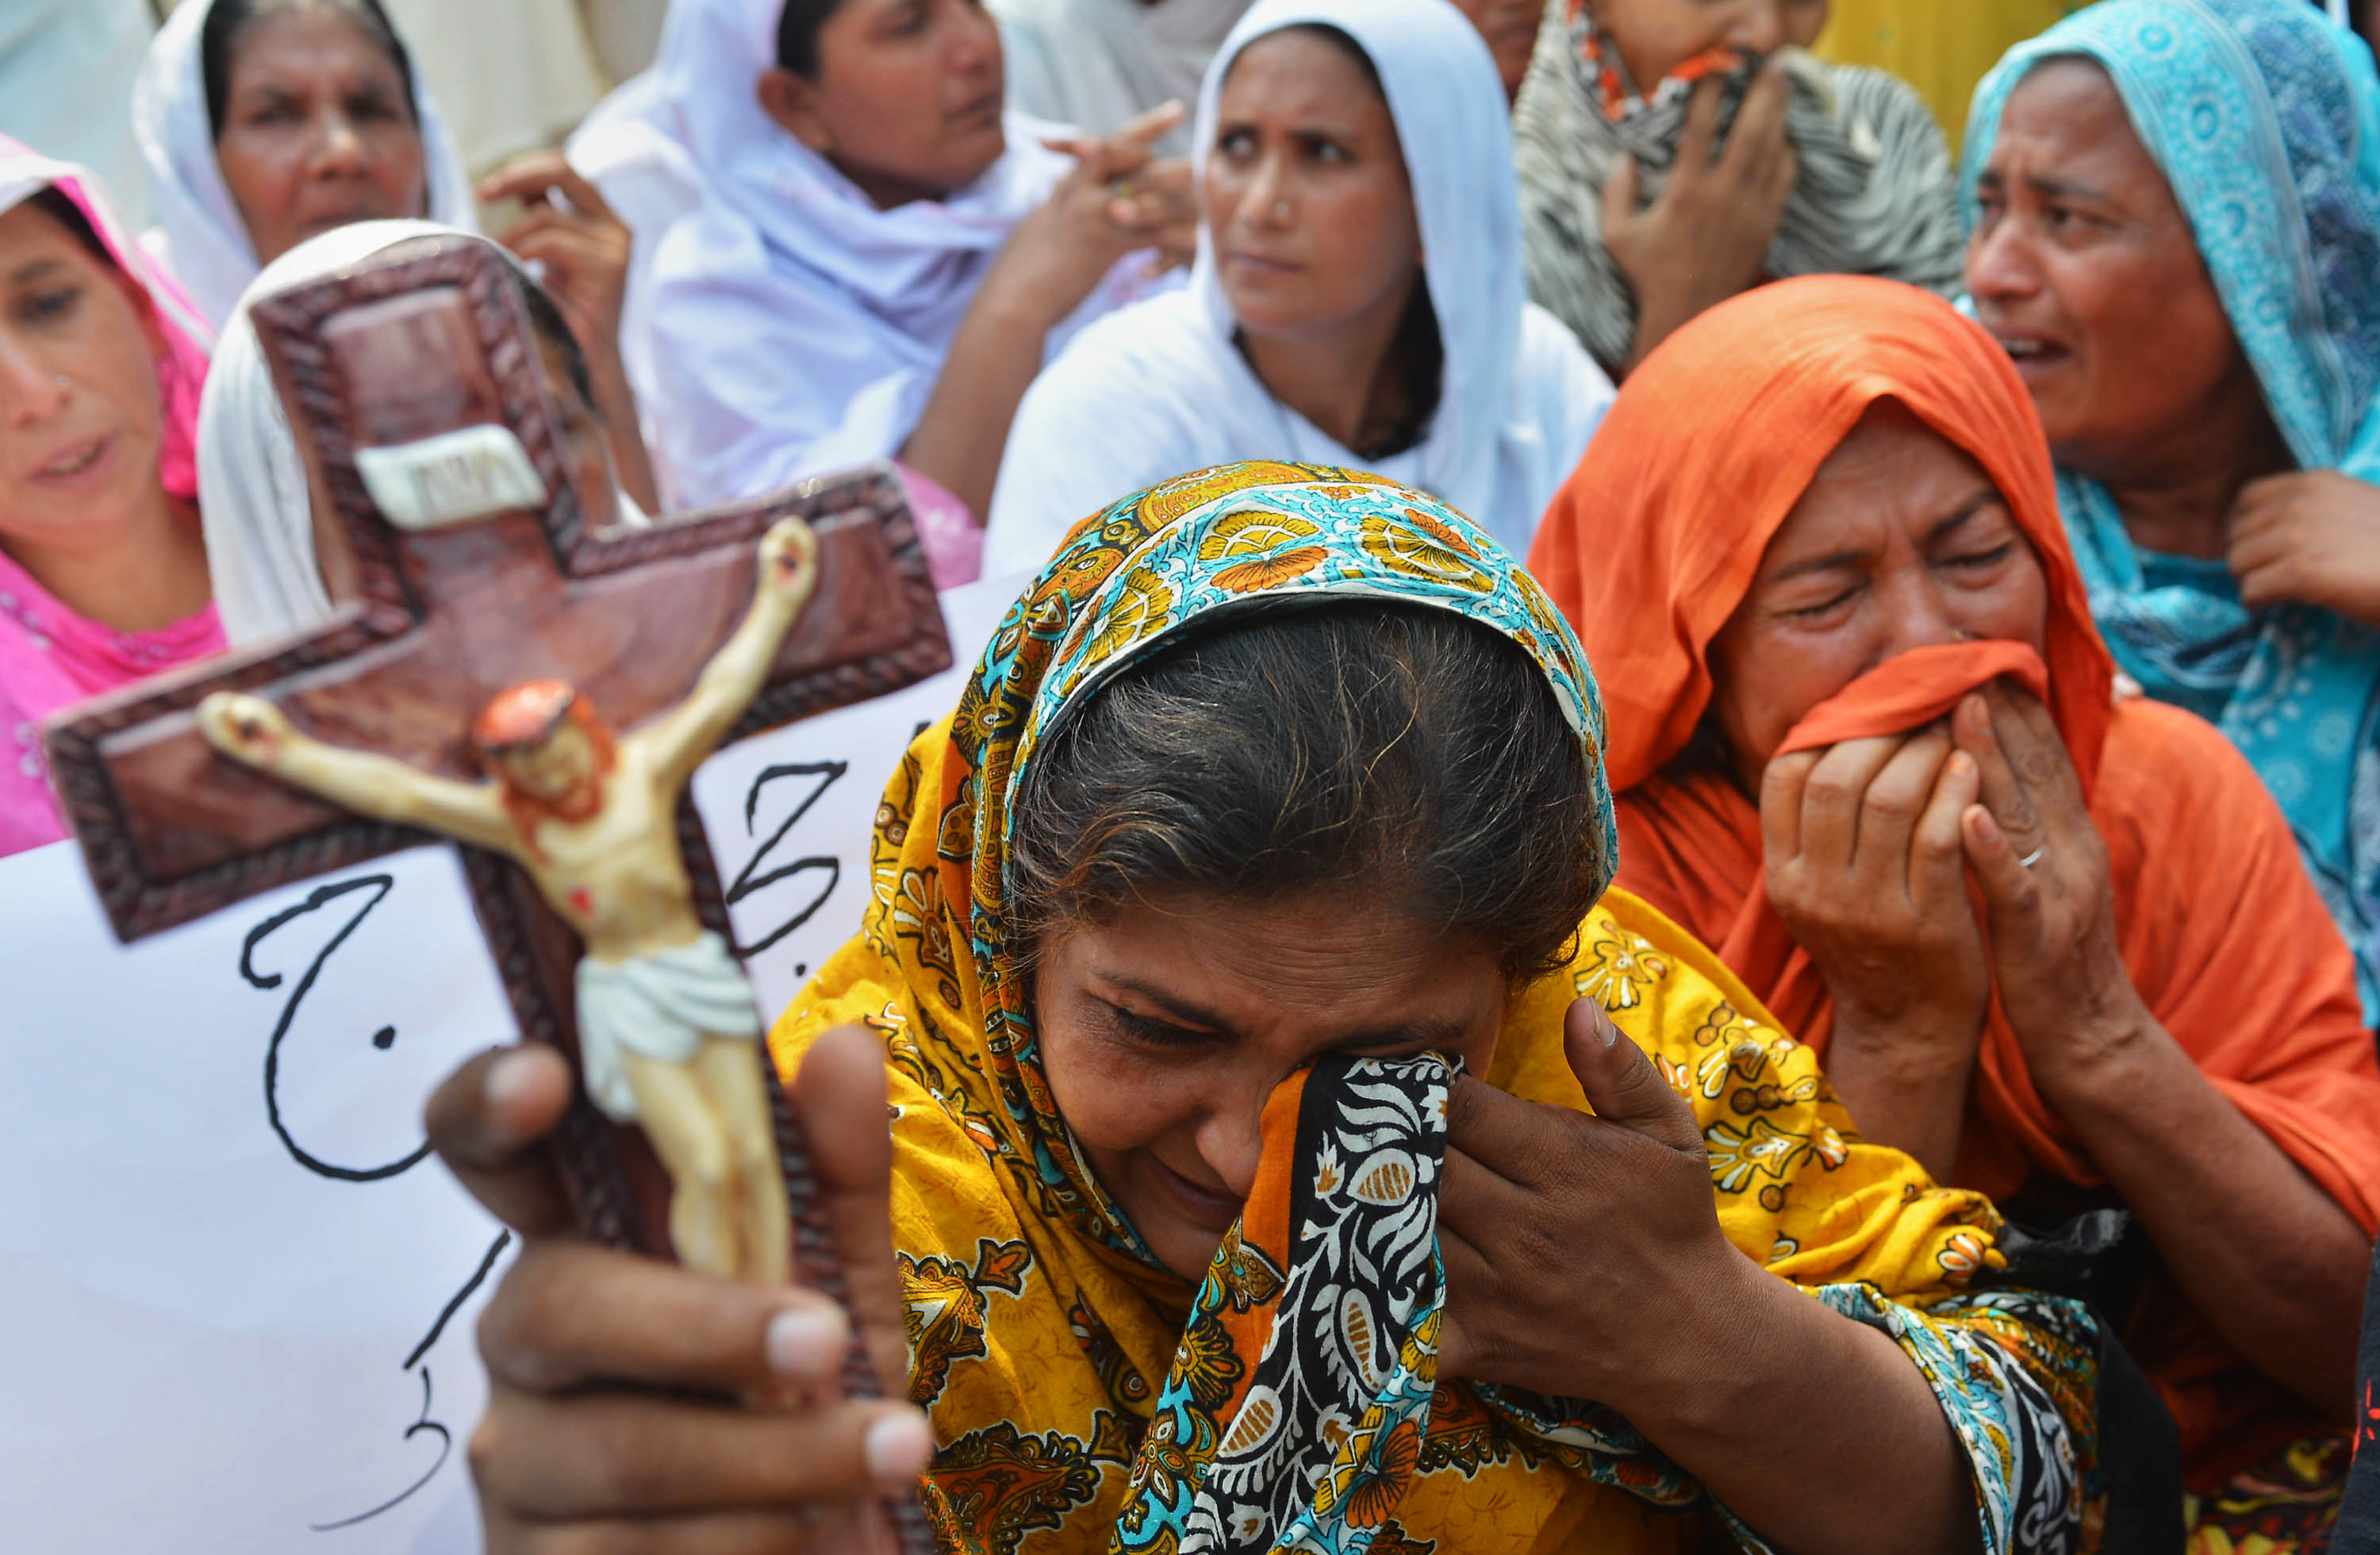 Pakistani Christians protest against the suicide bombing in All Saints church in the northwestern city of Peshawar on September 23, 2013. (A Majeed/AFP via Getty Images)